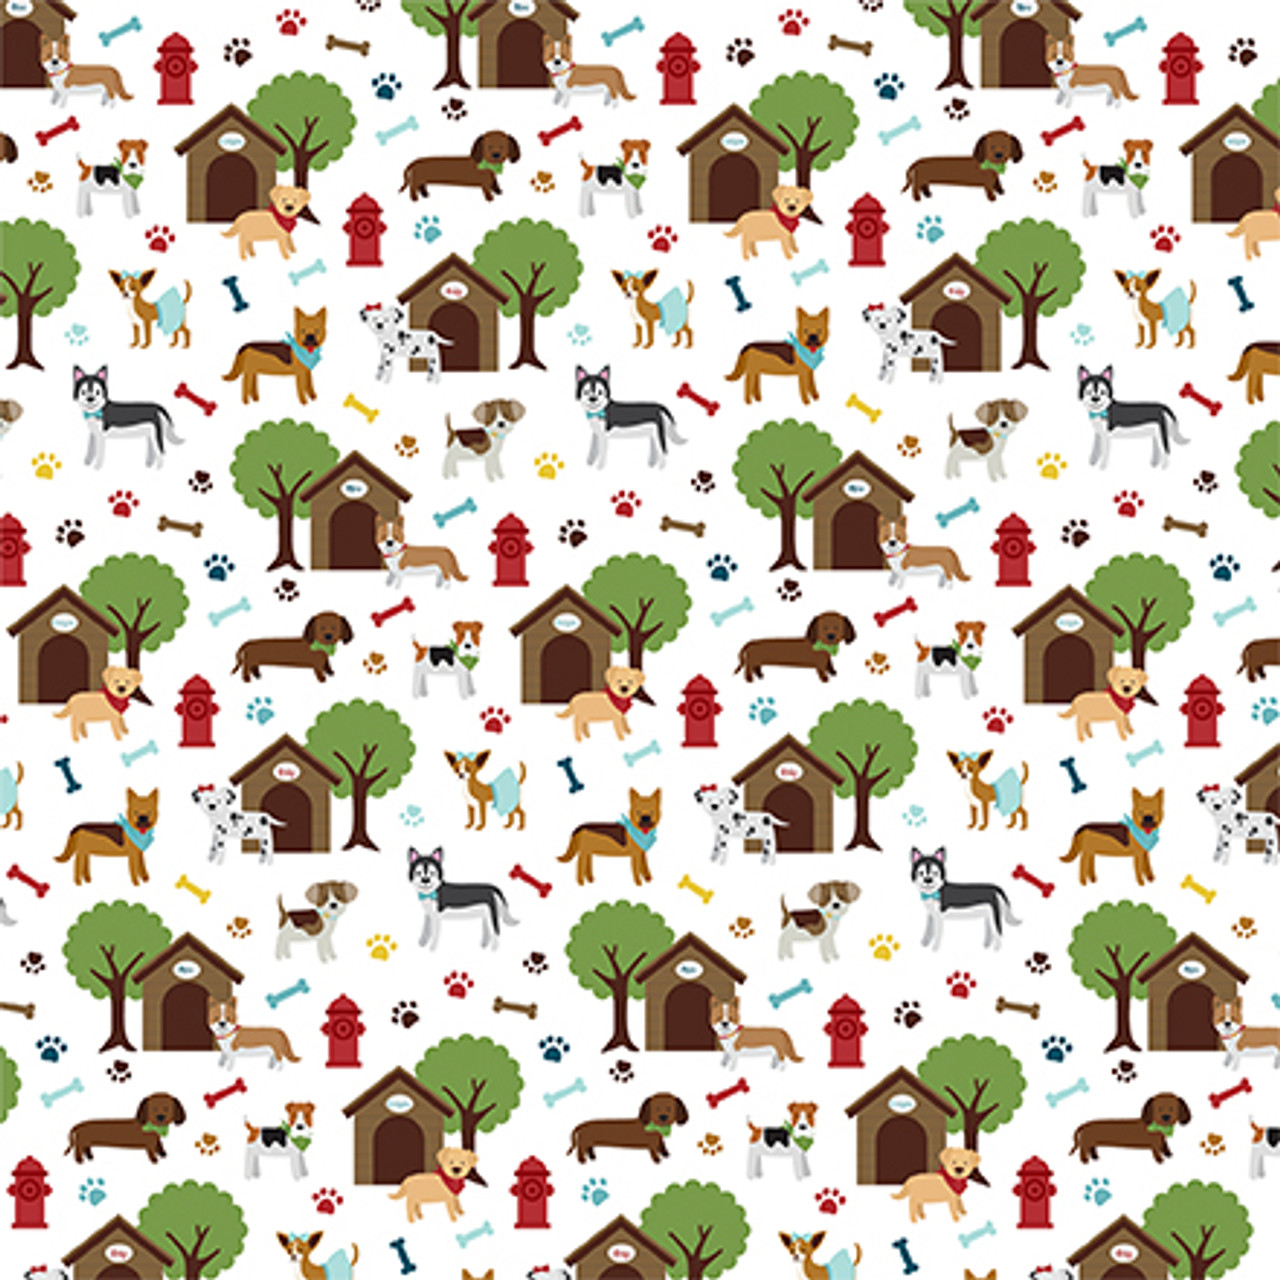 My Dog Collection Dog Days 12 x 12 Double-Sided Scrapbook Paper by Echo Park Paper